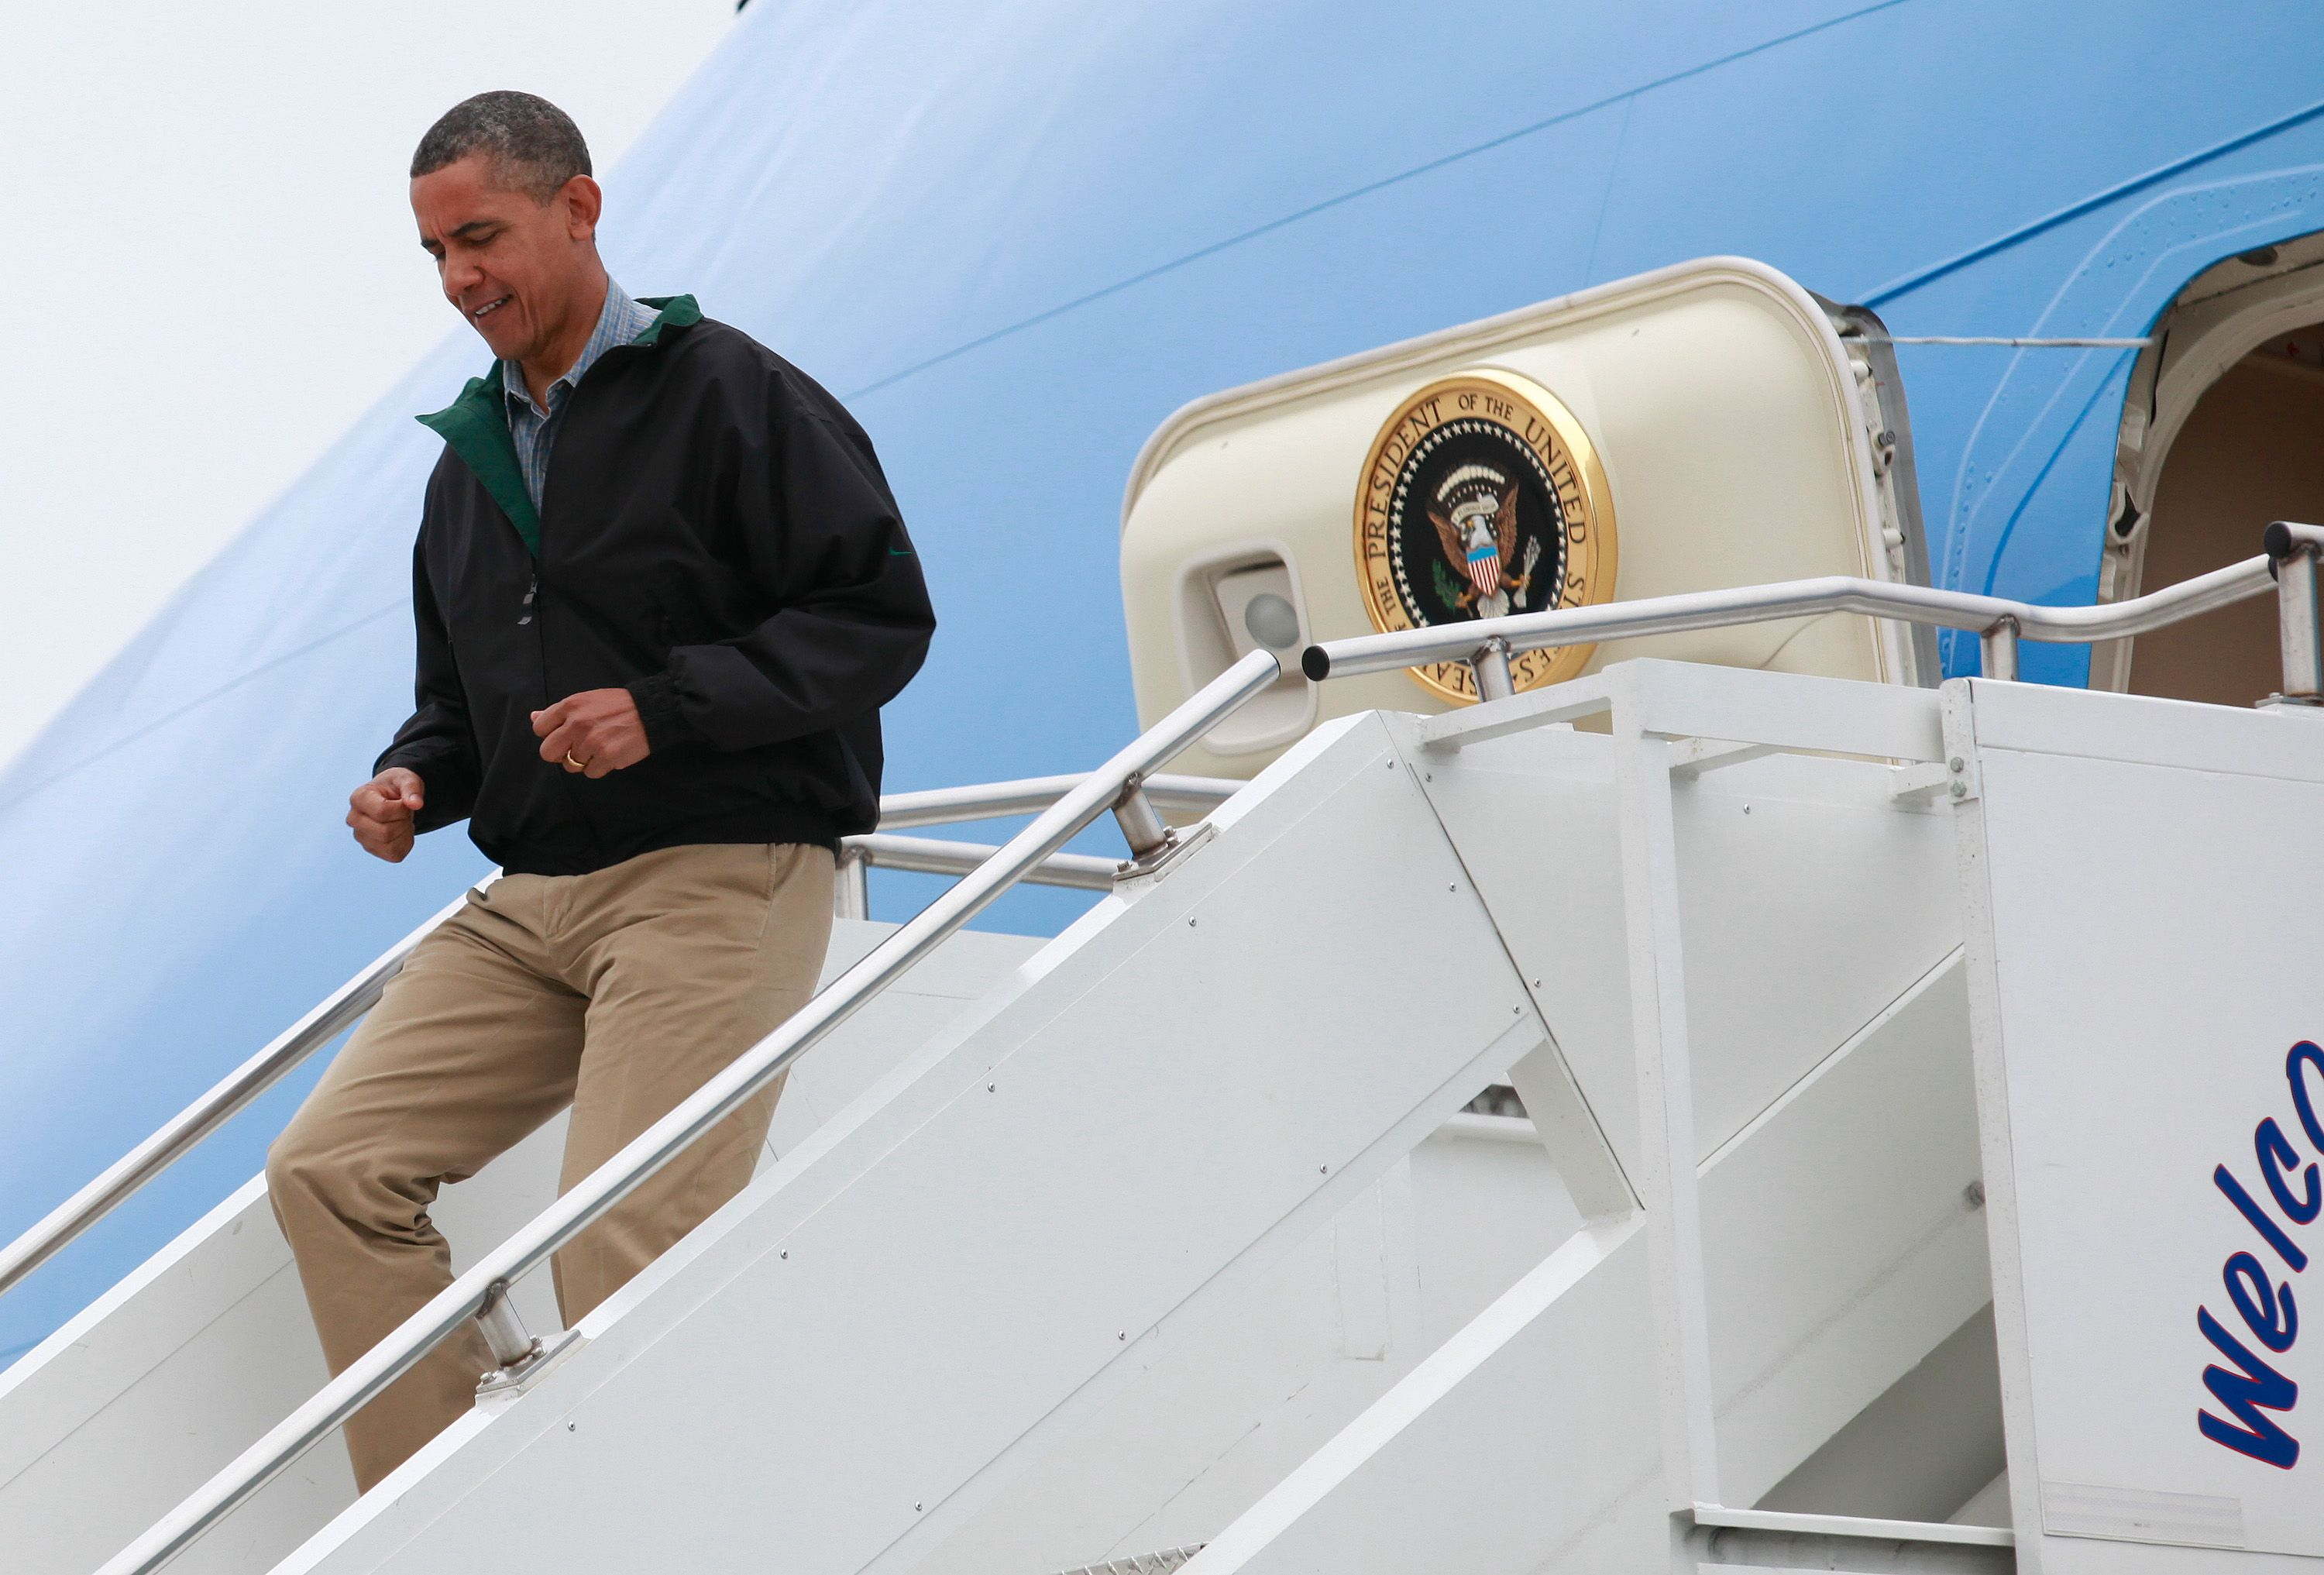 Obama arrives at at Offutt Air Force Base in Omaha, Nebraska, on August 13, 2012.